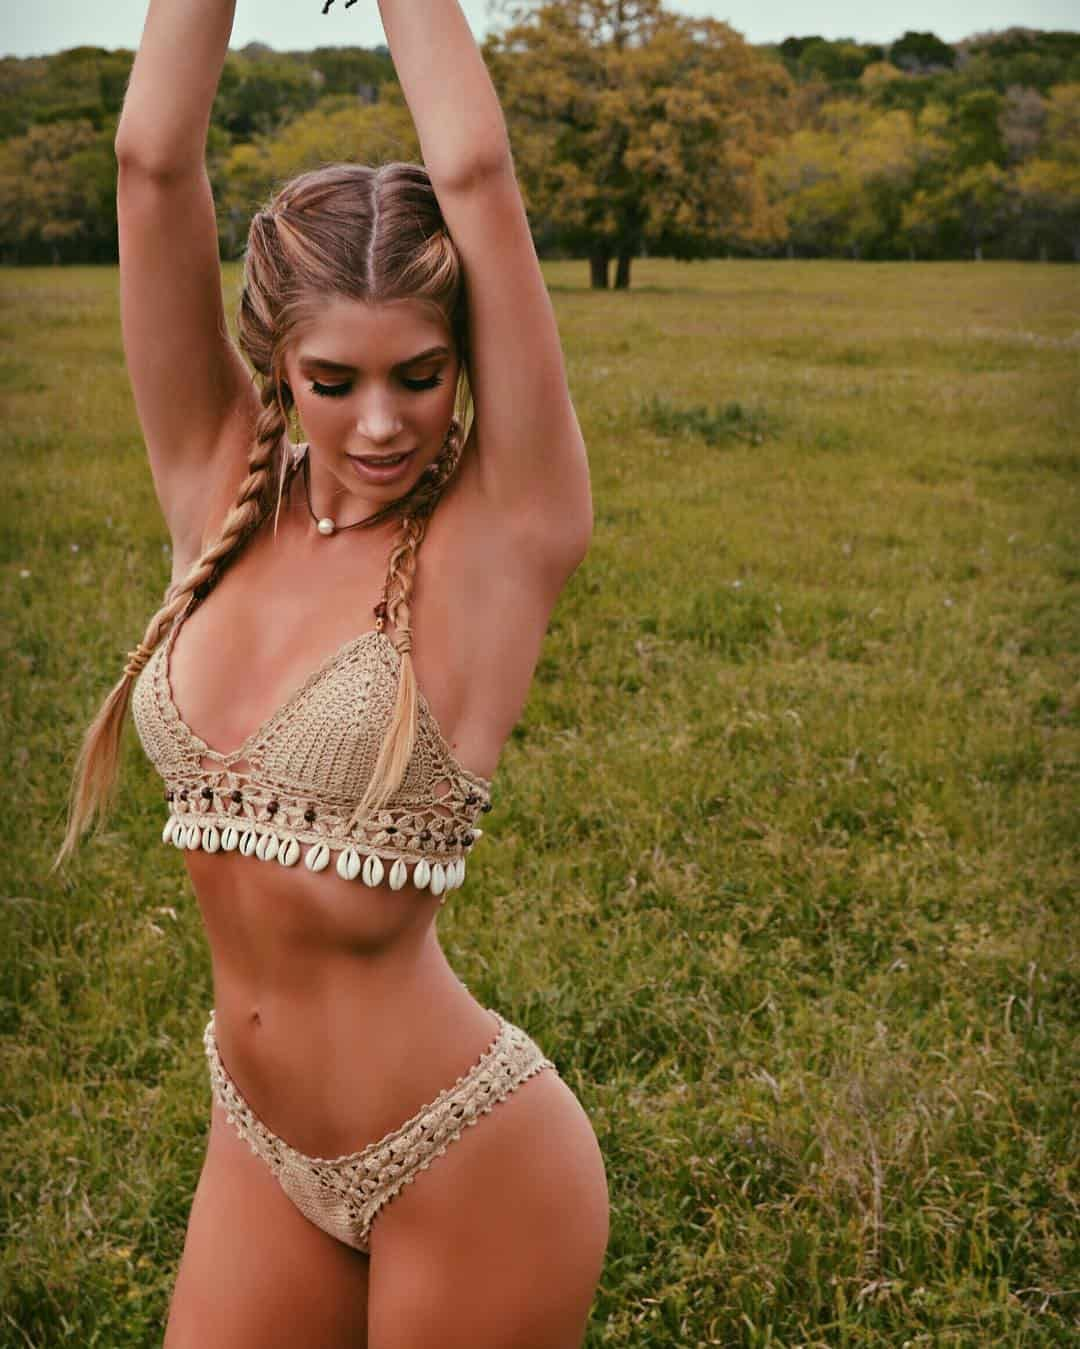 Allie DeBerry nude photos 2019